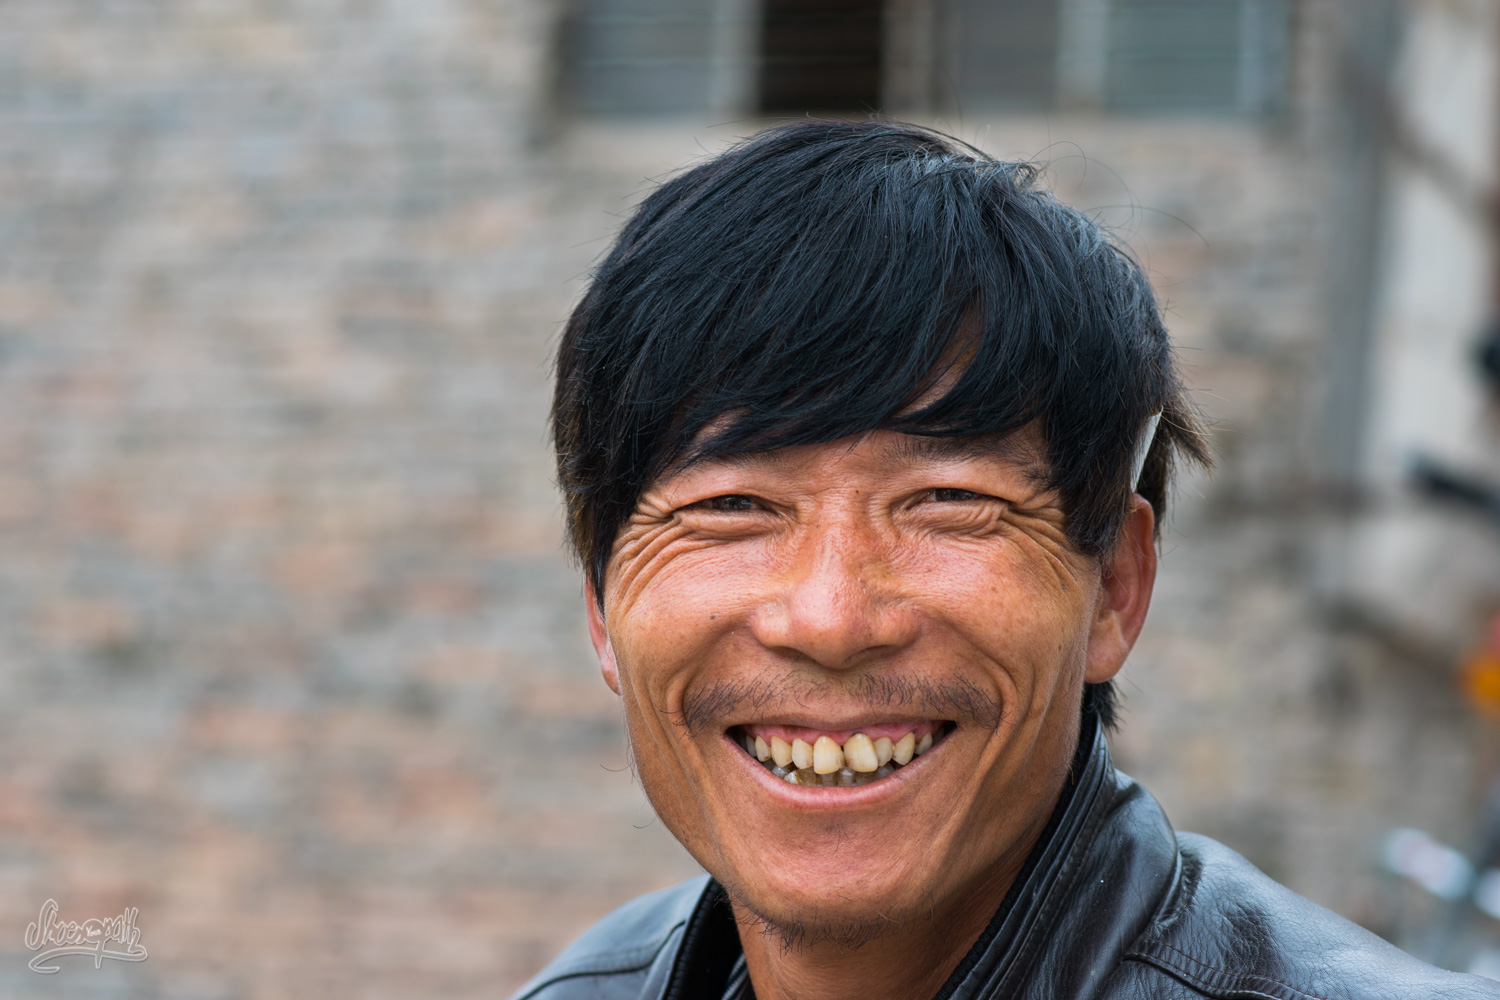 A pig merchant, met in a tiny village on the way. Seriously, such a smile, isn't convincing ?